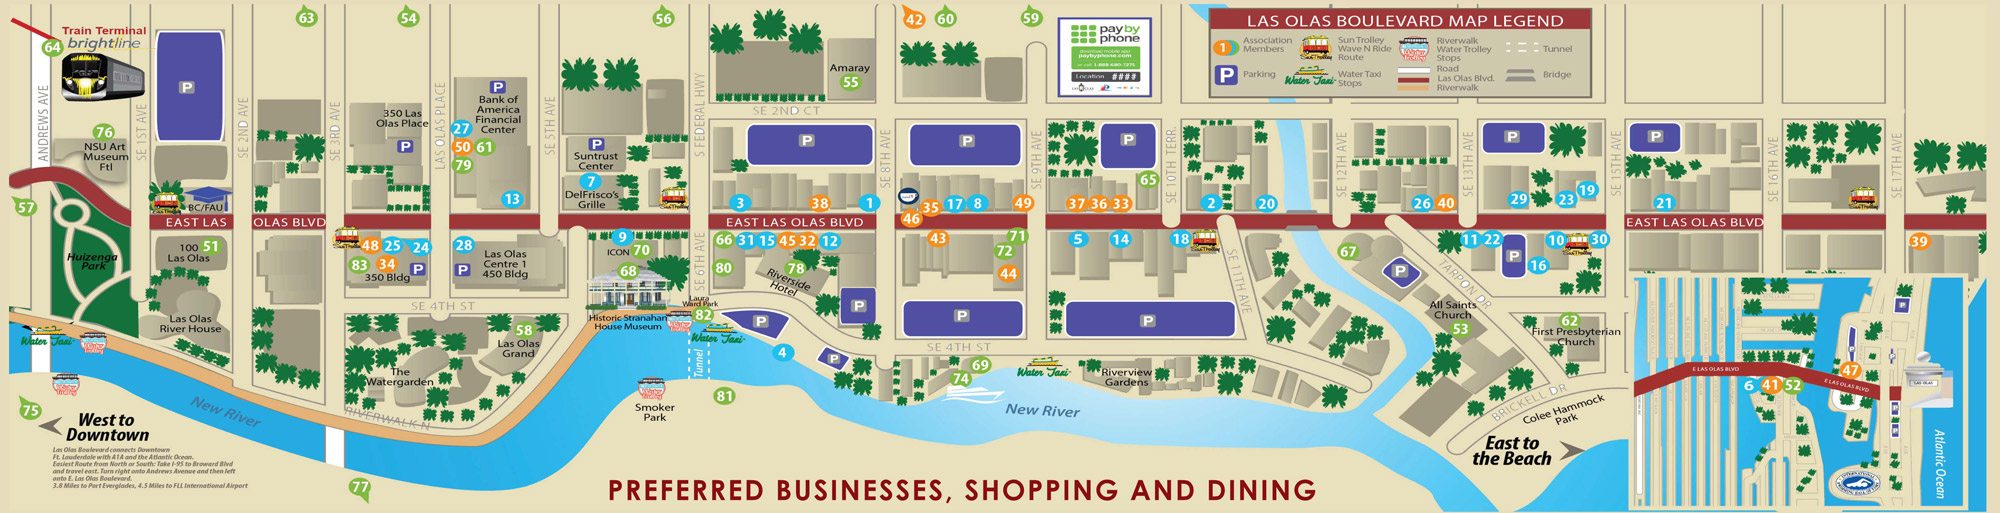 Las Olas Map & Directory   Best Restaurants, Shops & Things To Do - Street Map Of Fort Lauderdale Florida